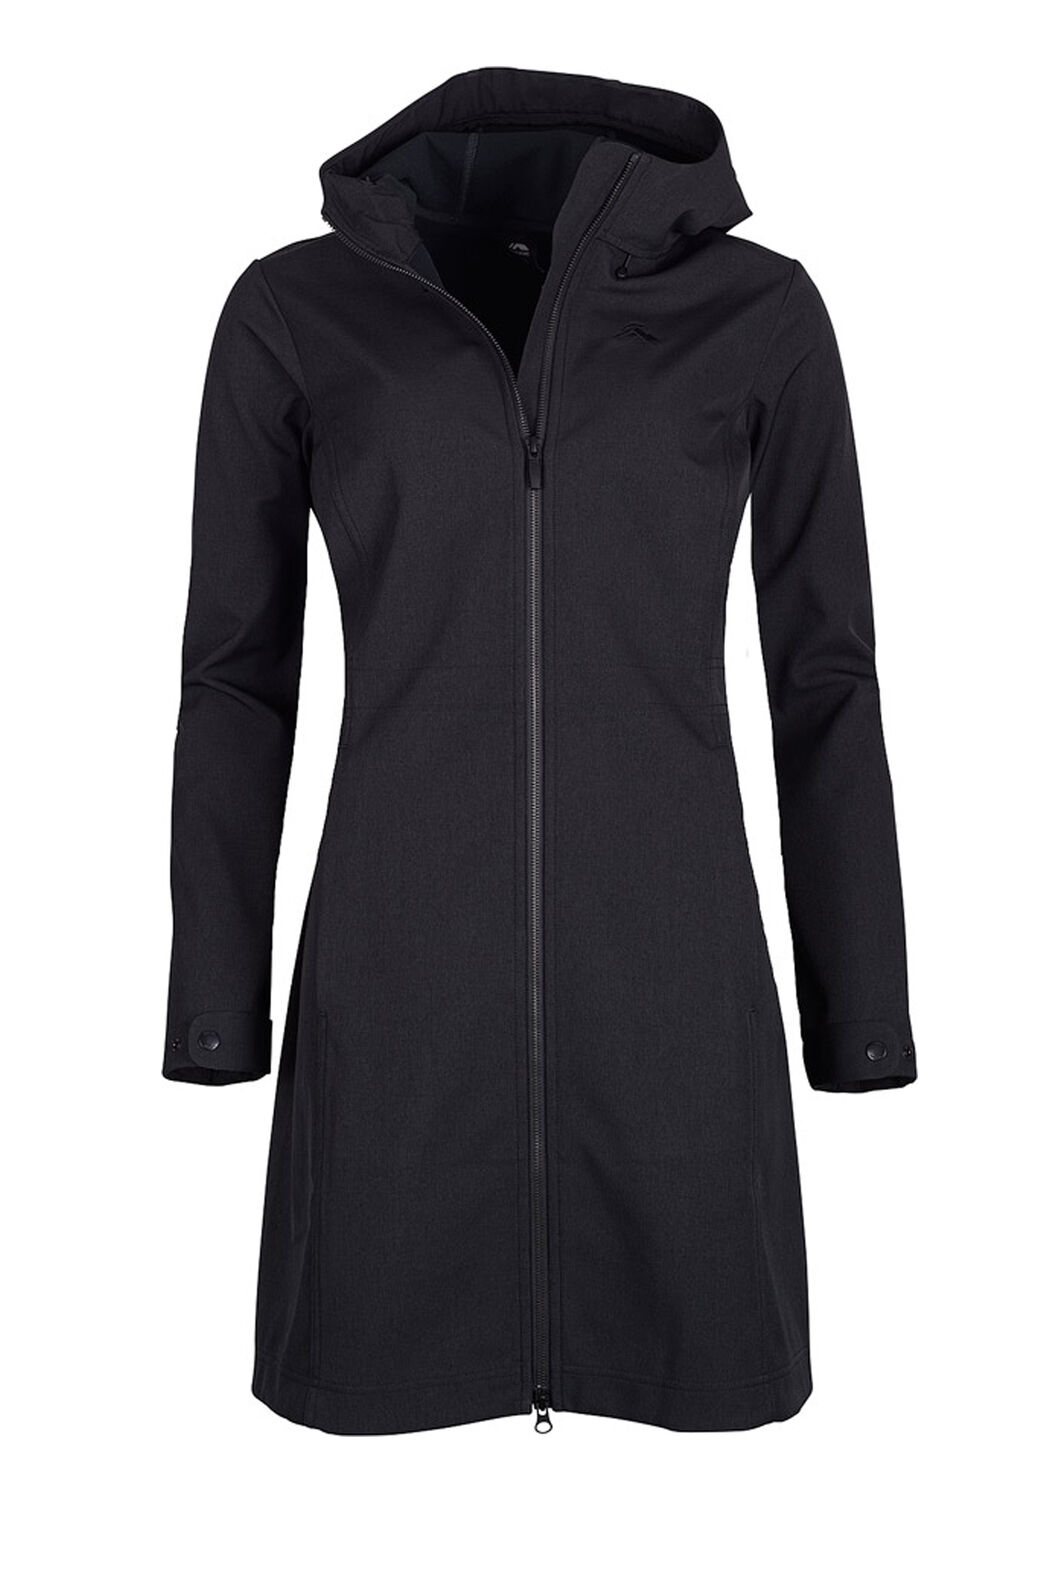 Macpac Chord Softshell Hooded Coat — Women's, Black, hi-res